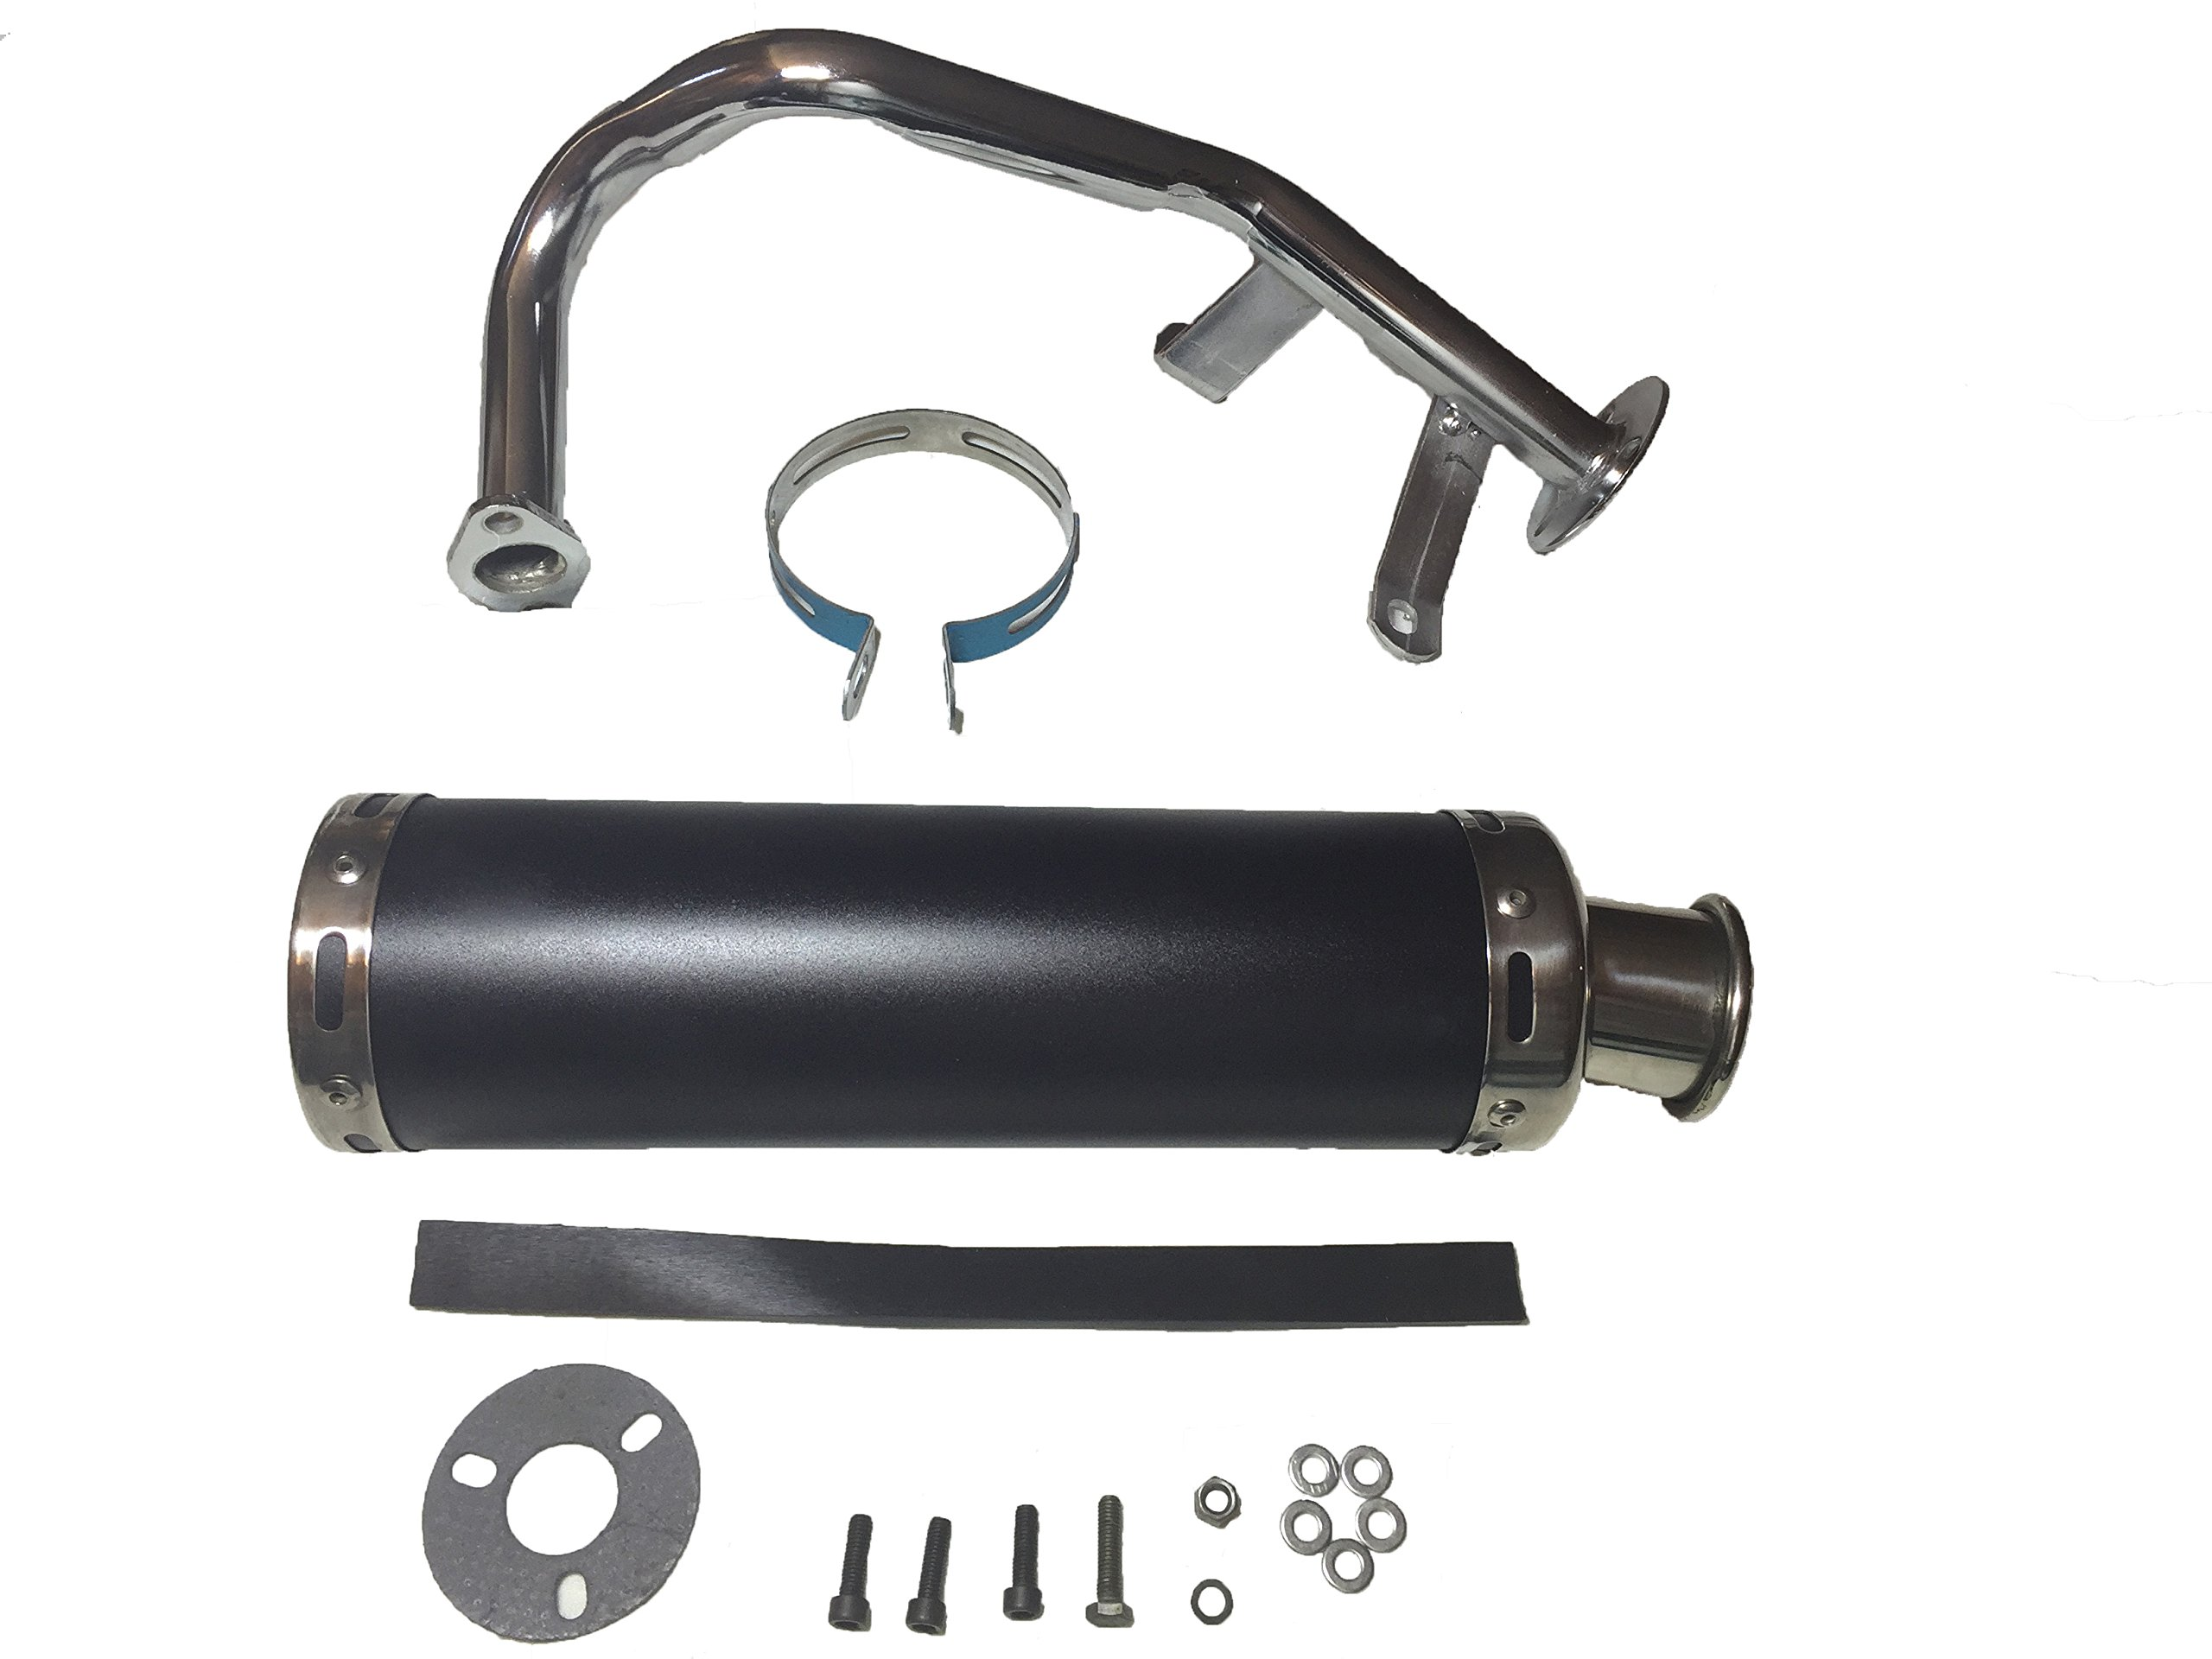 PERFORMANCE EXHAUST MUFFLER 50CC 80CC 100CC GY6 SCOOTER PEACE MOPED ATV